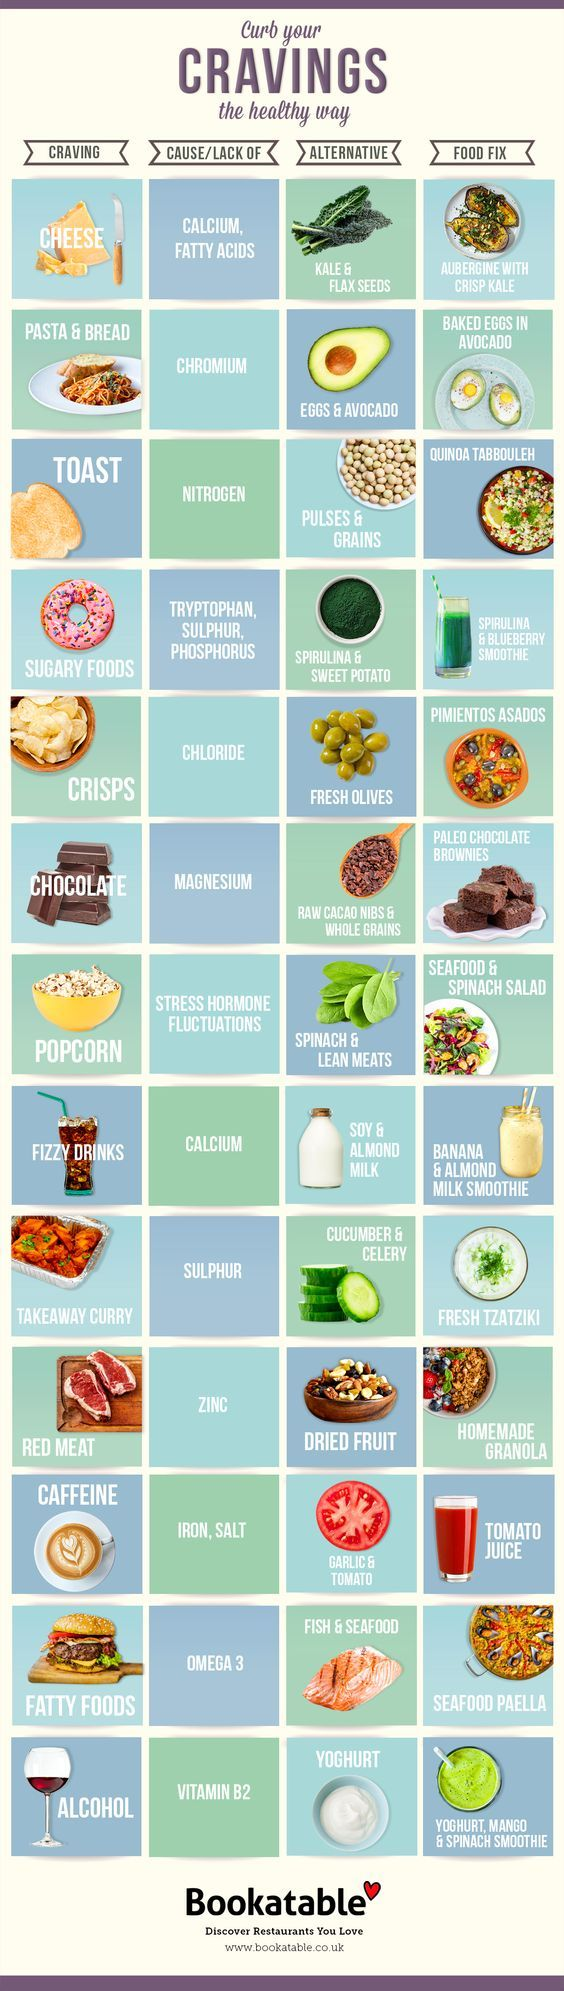 10 Strategies to Kick Bad Food Cravings - Pageant Planet kick bad food cravings,how to